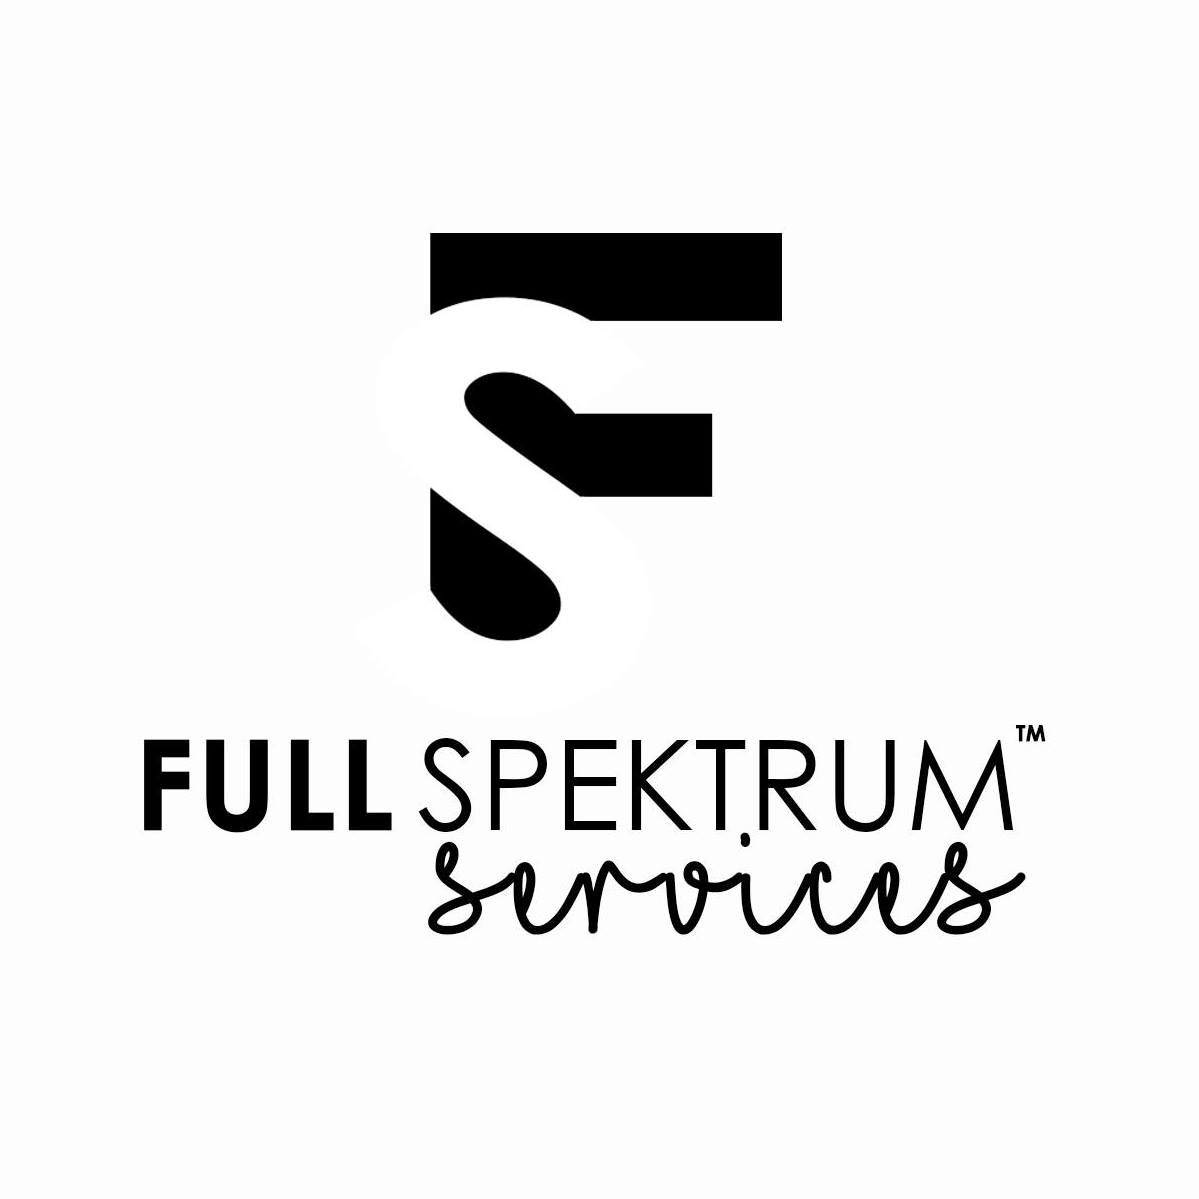 Full Spektrum Services